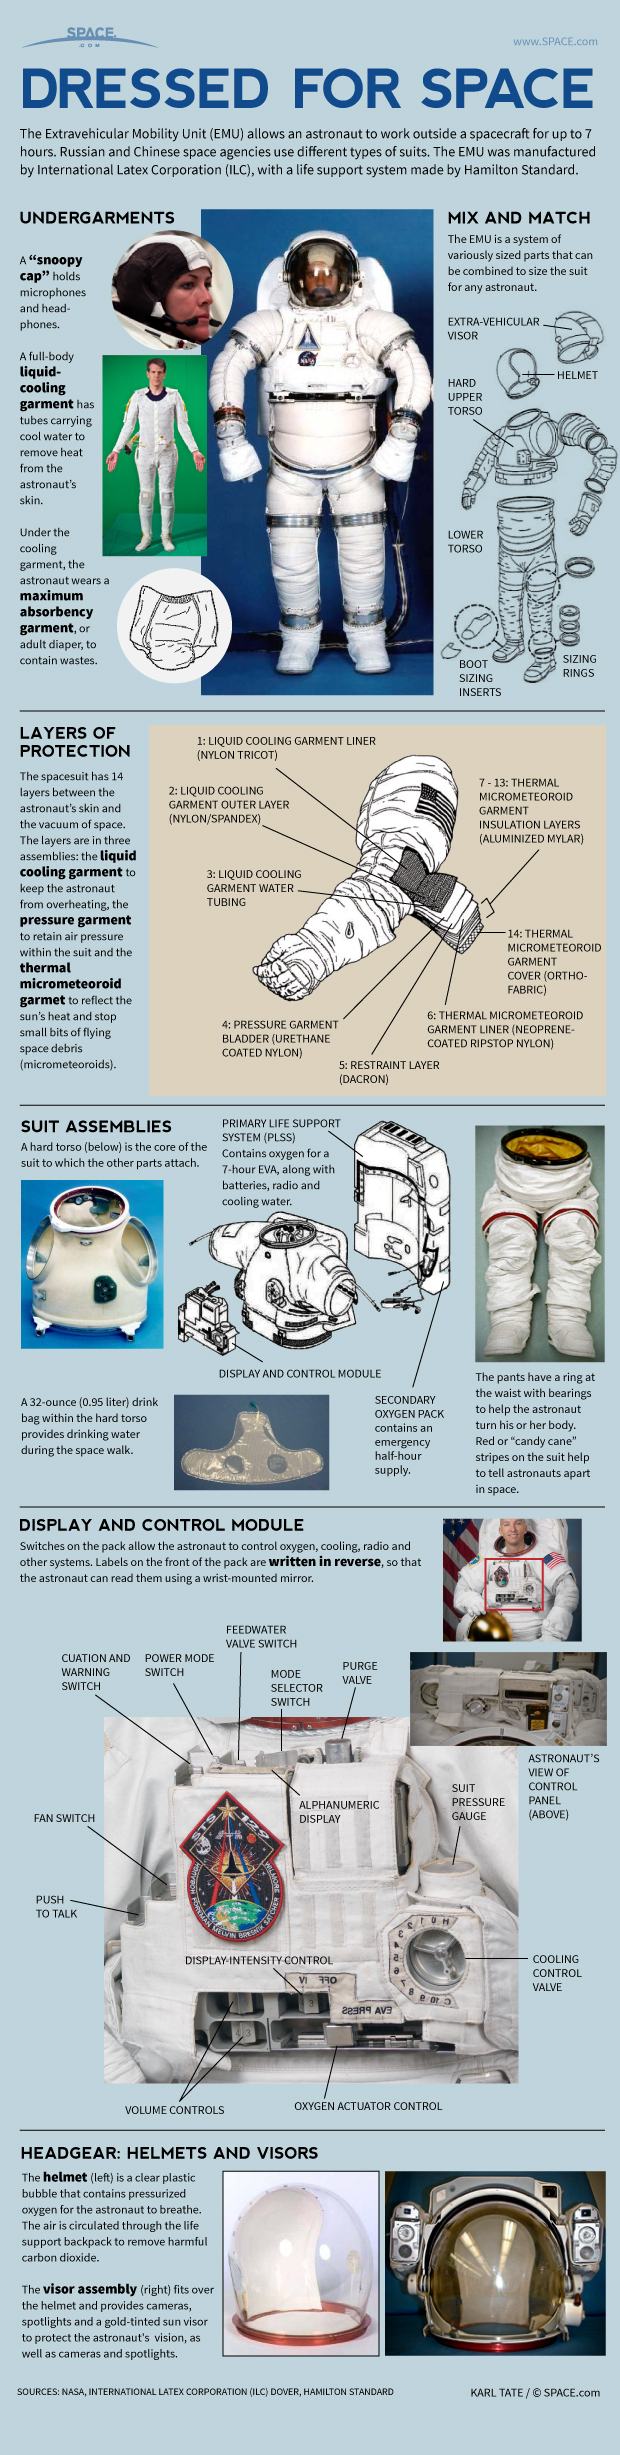 How Astronauts' Space Suits Work (Infographic)